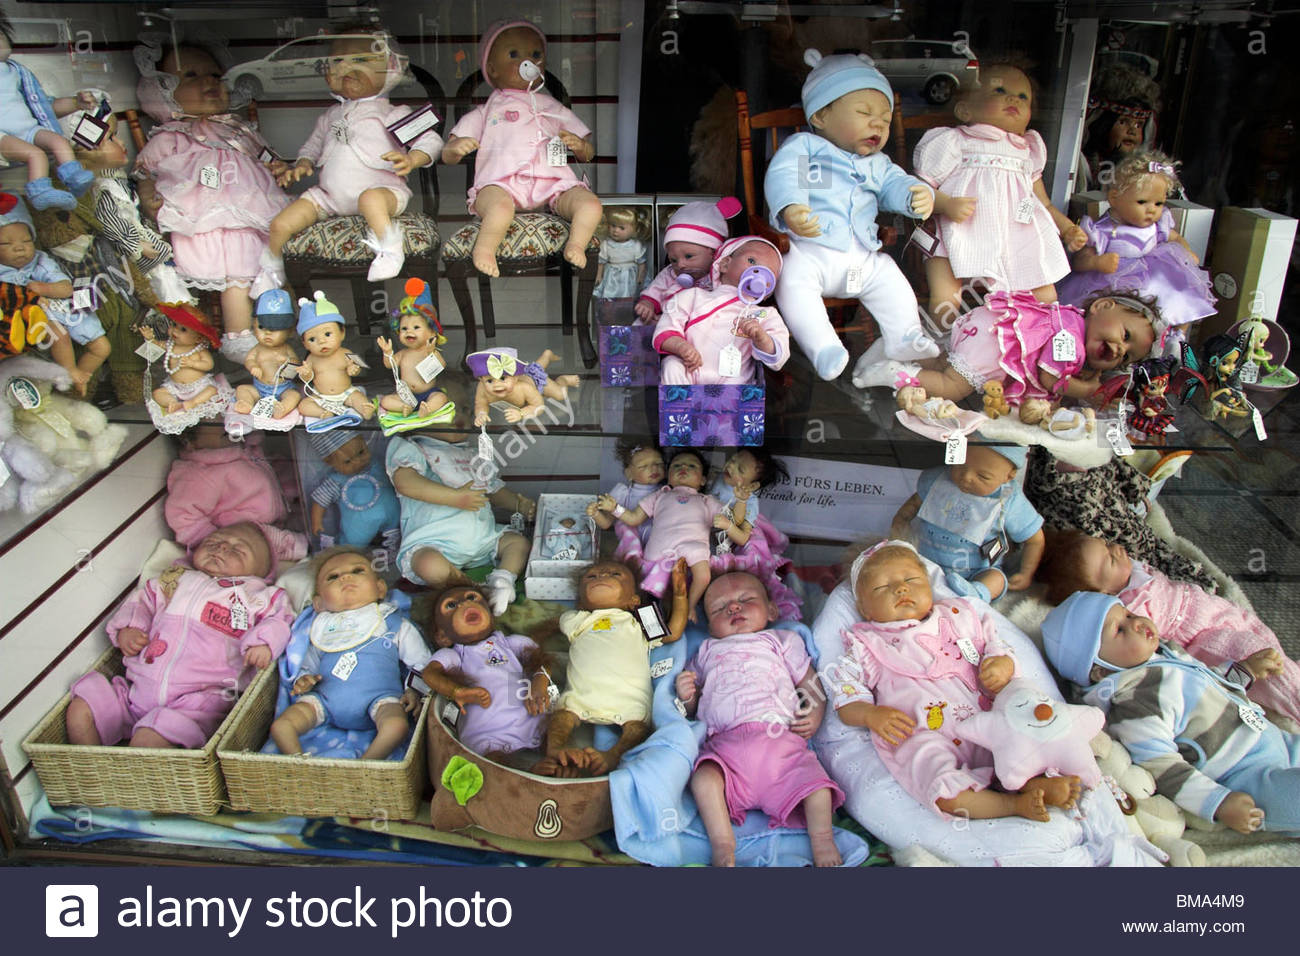 Reborn baby dolls in a shop window display. Skegness, Lincolnshire, UK. - Stock Image